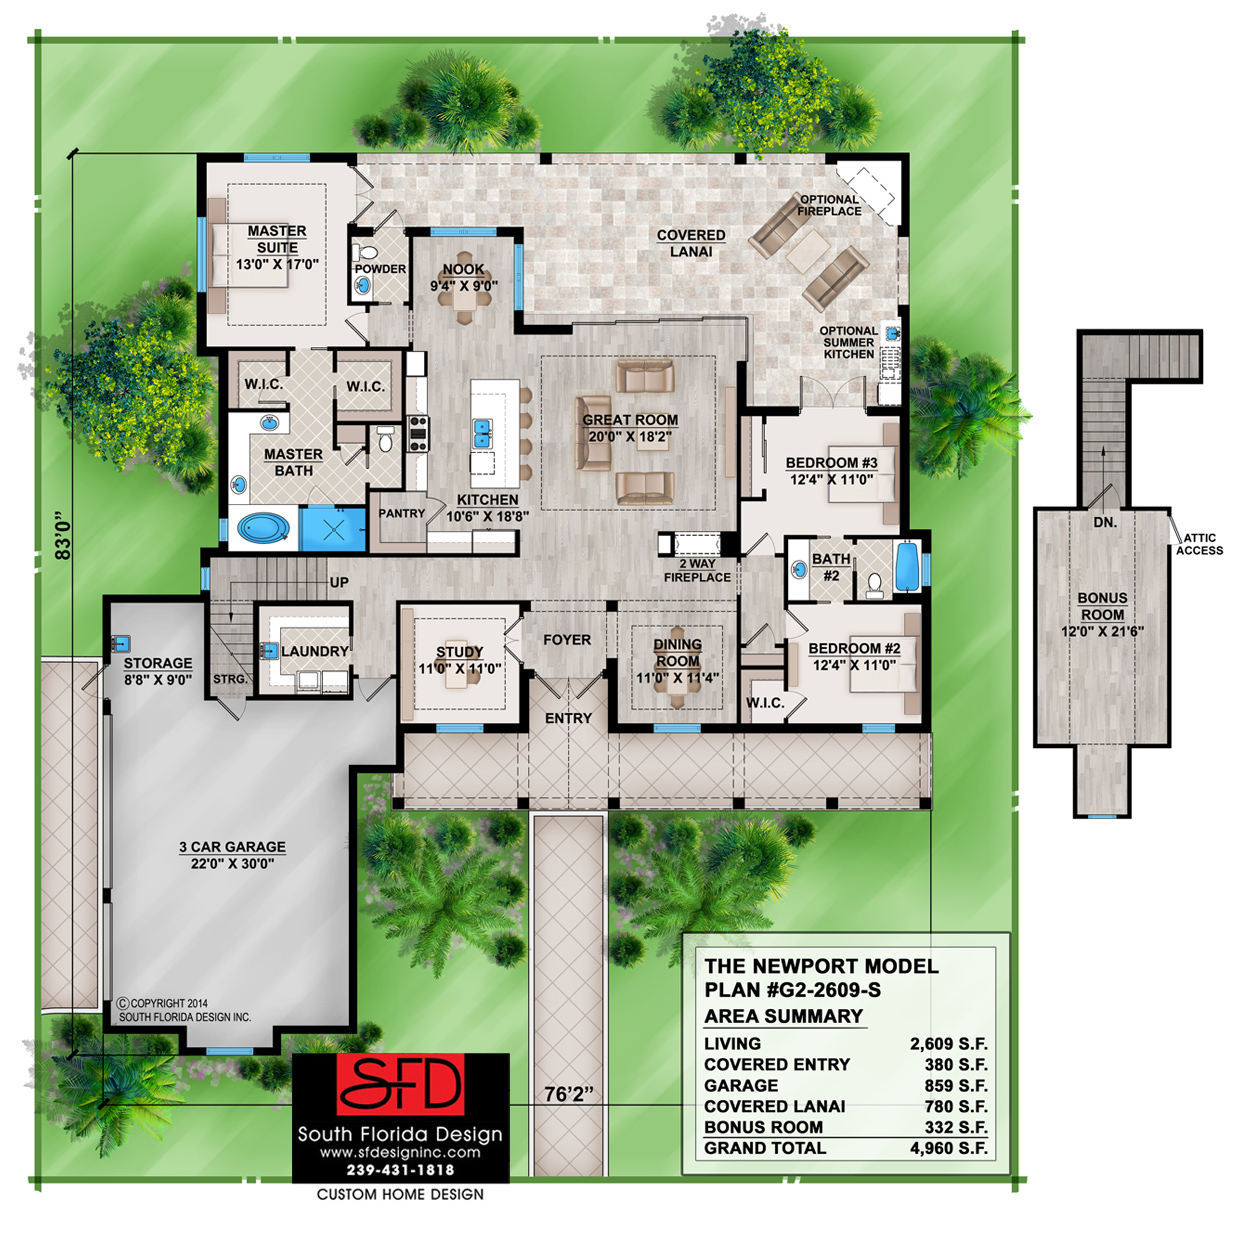 South florida designs olde florida style 3 bedroom house for Old florida home plans